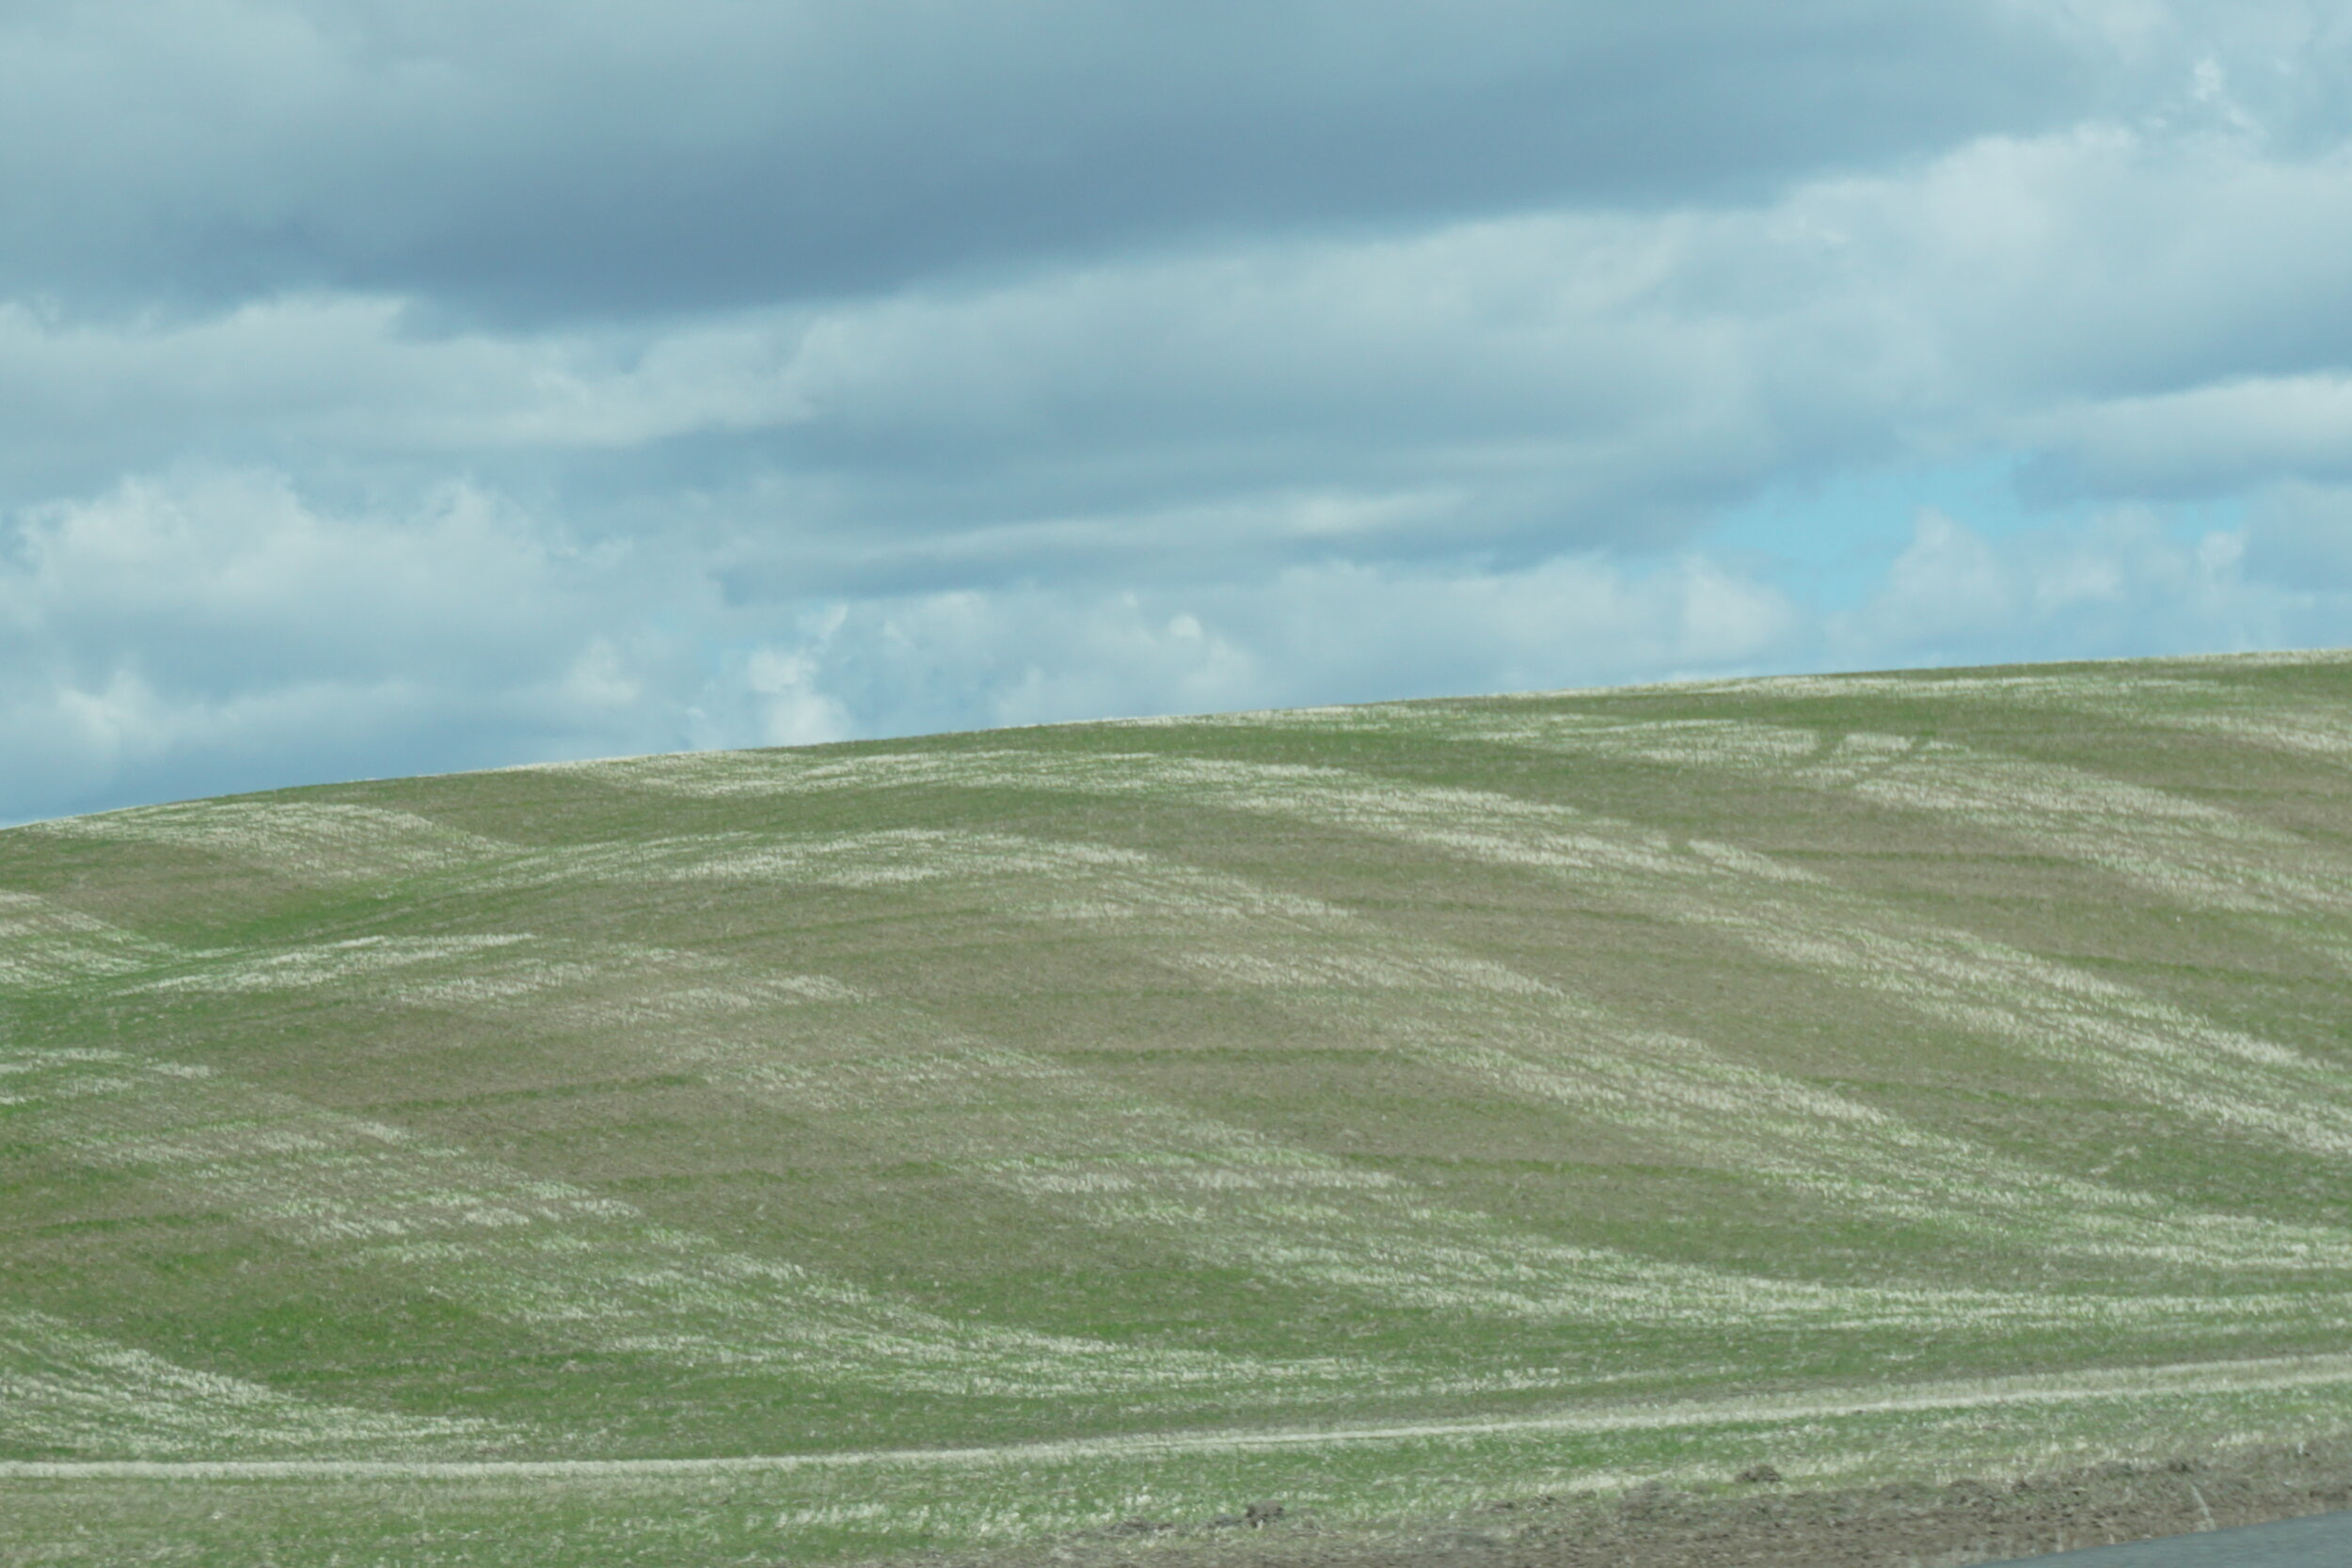 Contour farming in the wheat fields